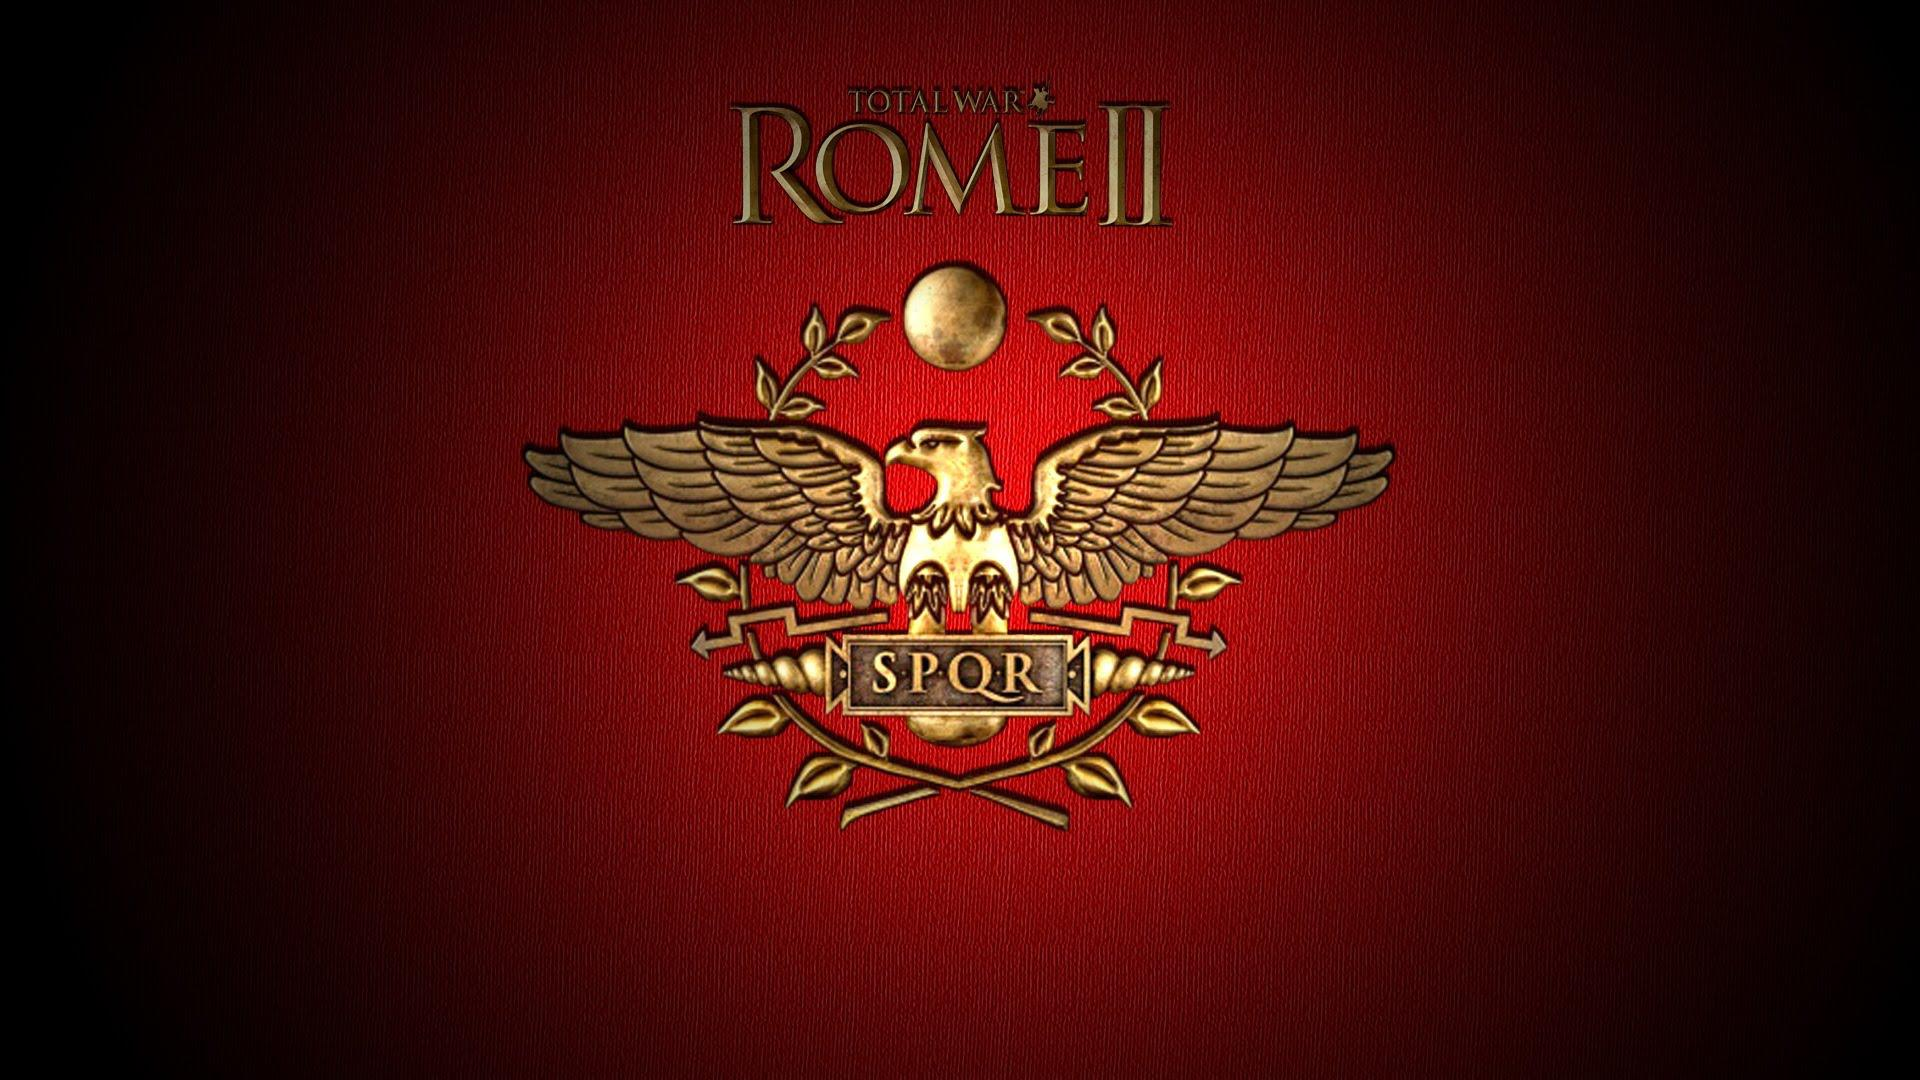 Rome II wallpapers Mostly taken from game files